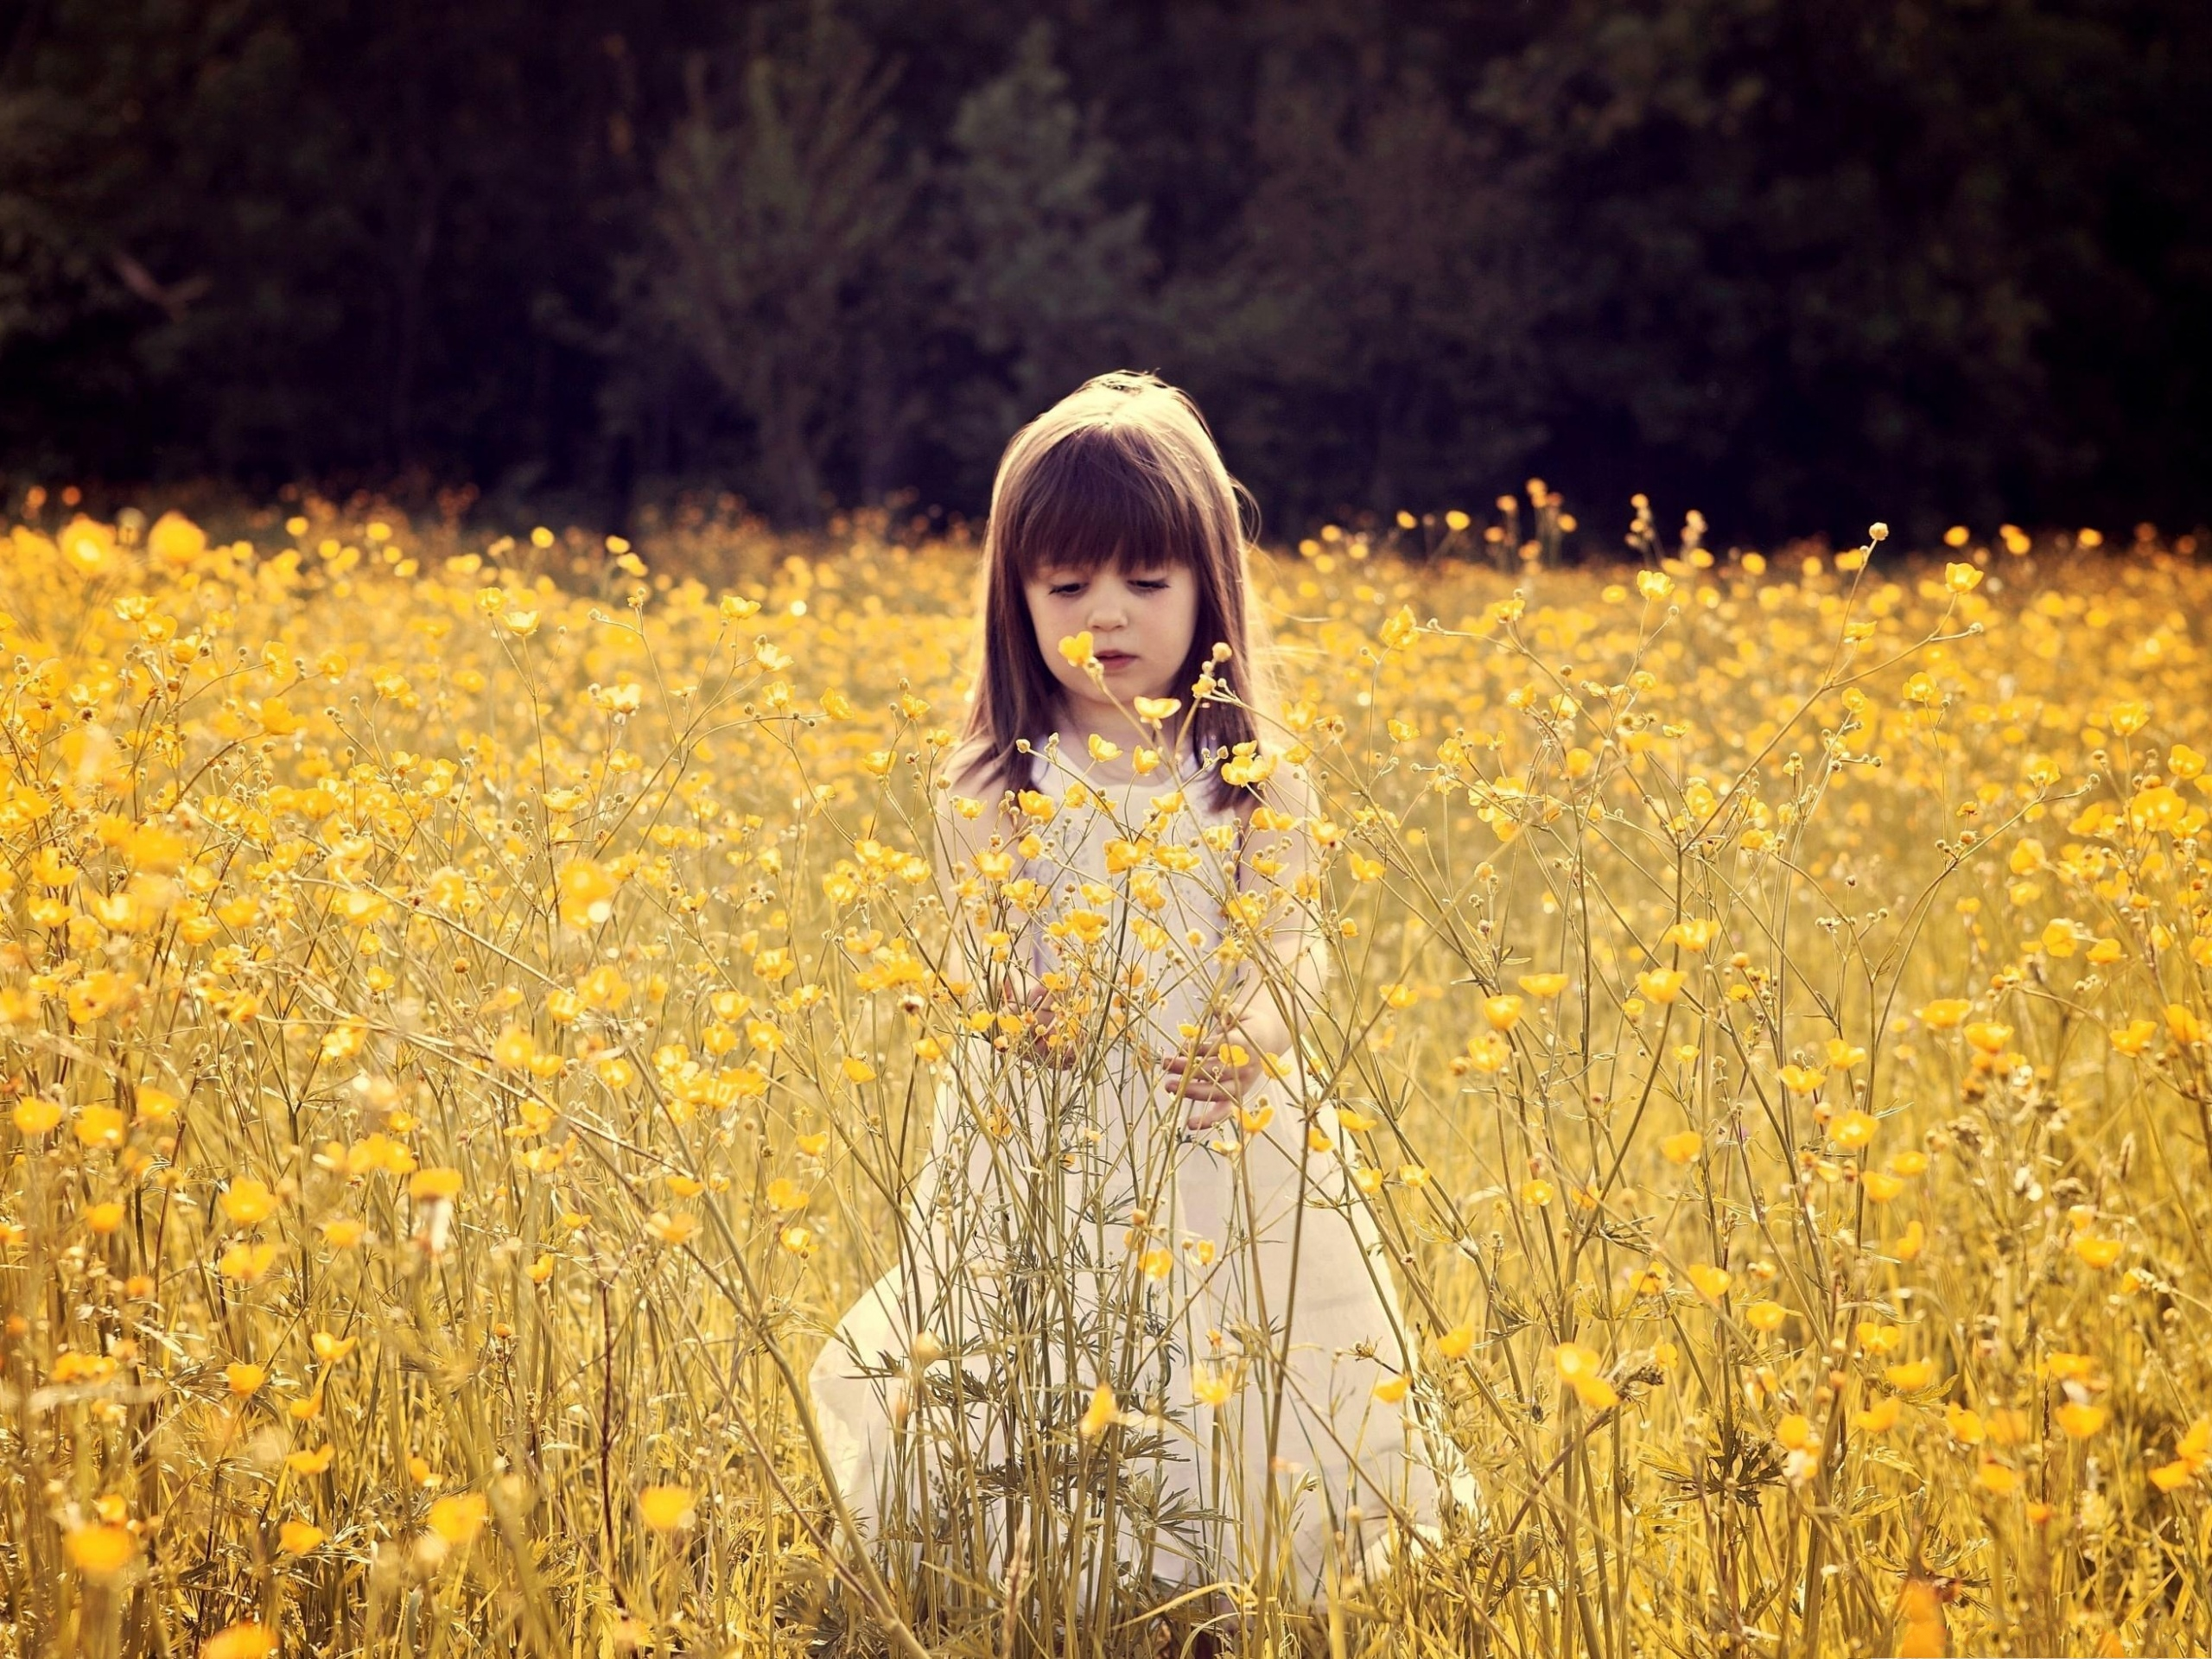 click to free download the wallpaper--Flower Field Photography, Cute Baby Girl in Yellow Flower Sea, Having Great Fun 2560X1920 free wallpaper download